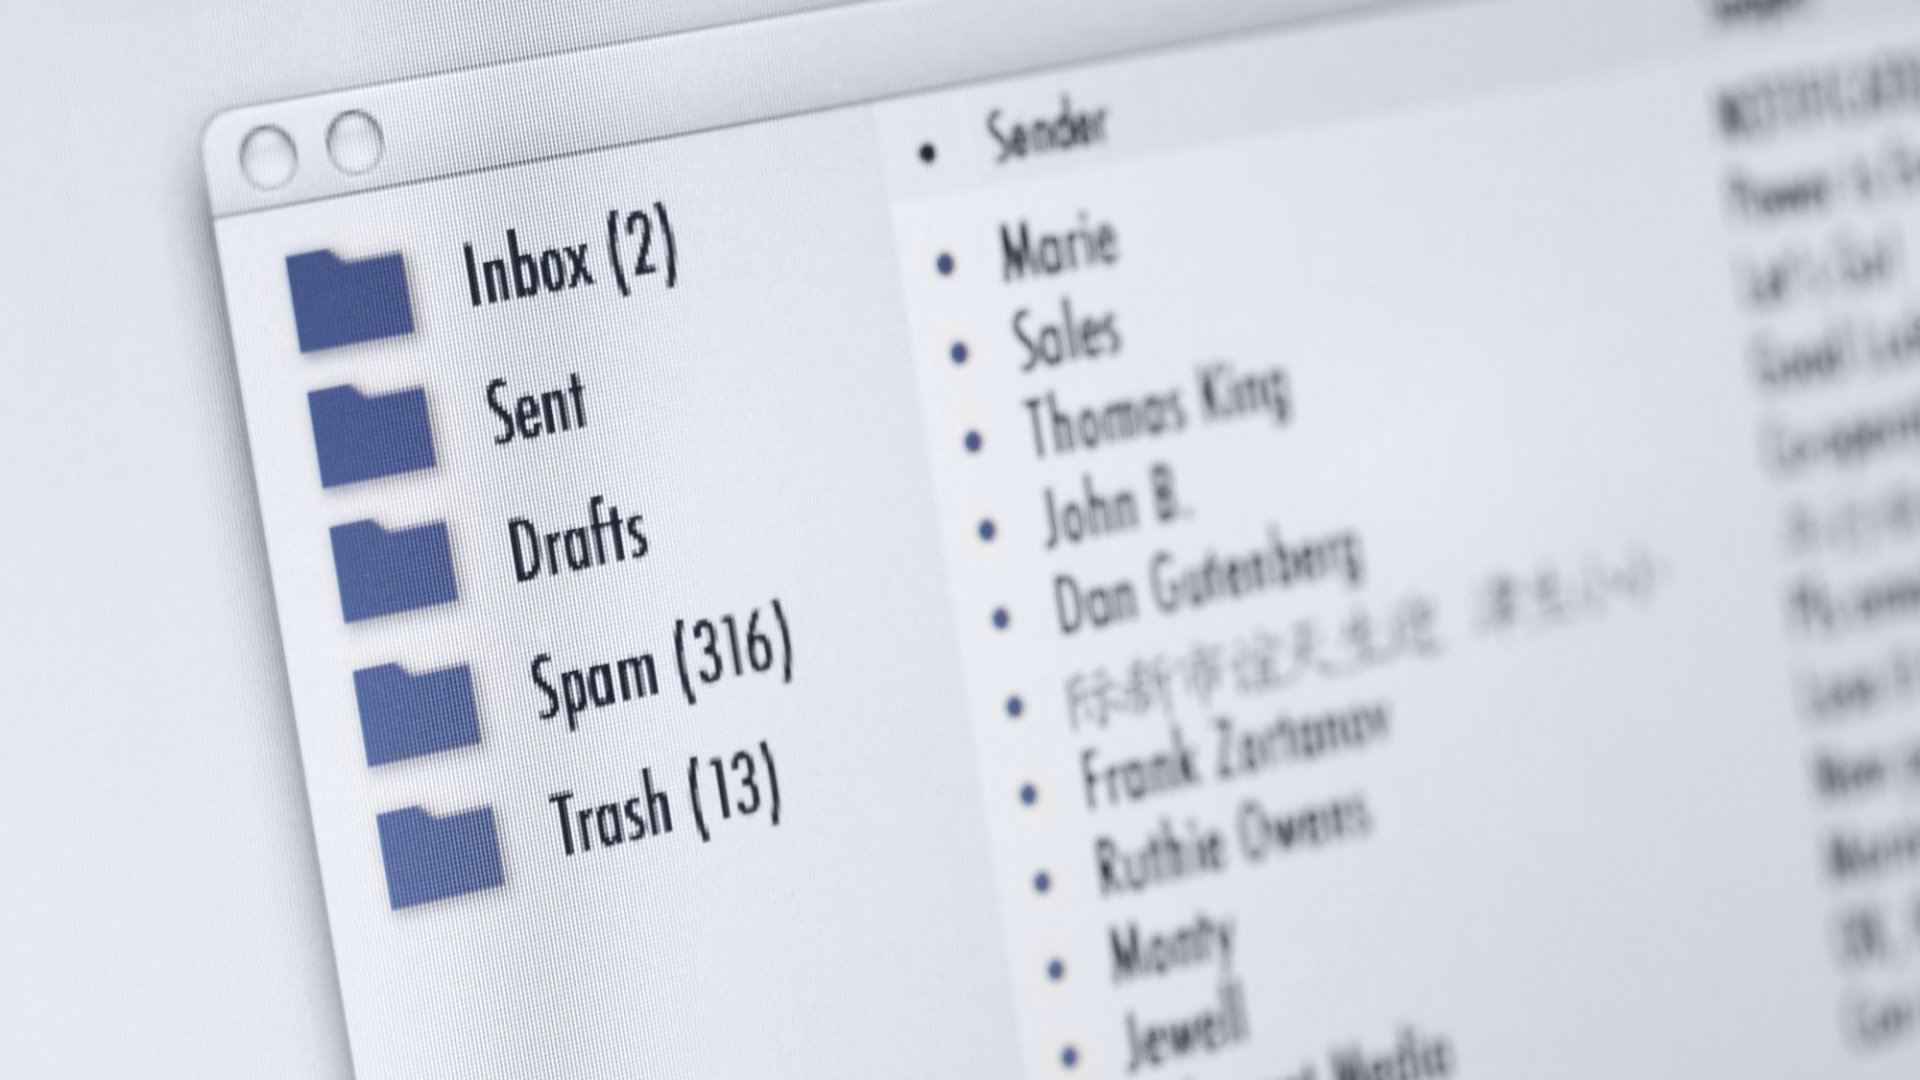 A Seemingly Innocent Email Hack That Could Destroy Creativity